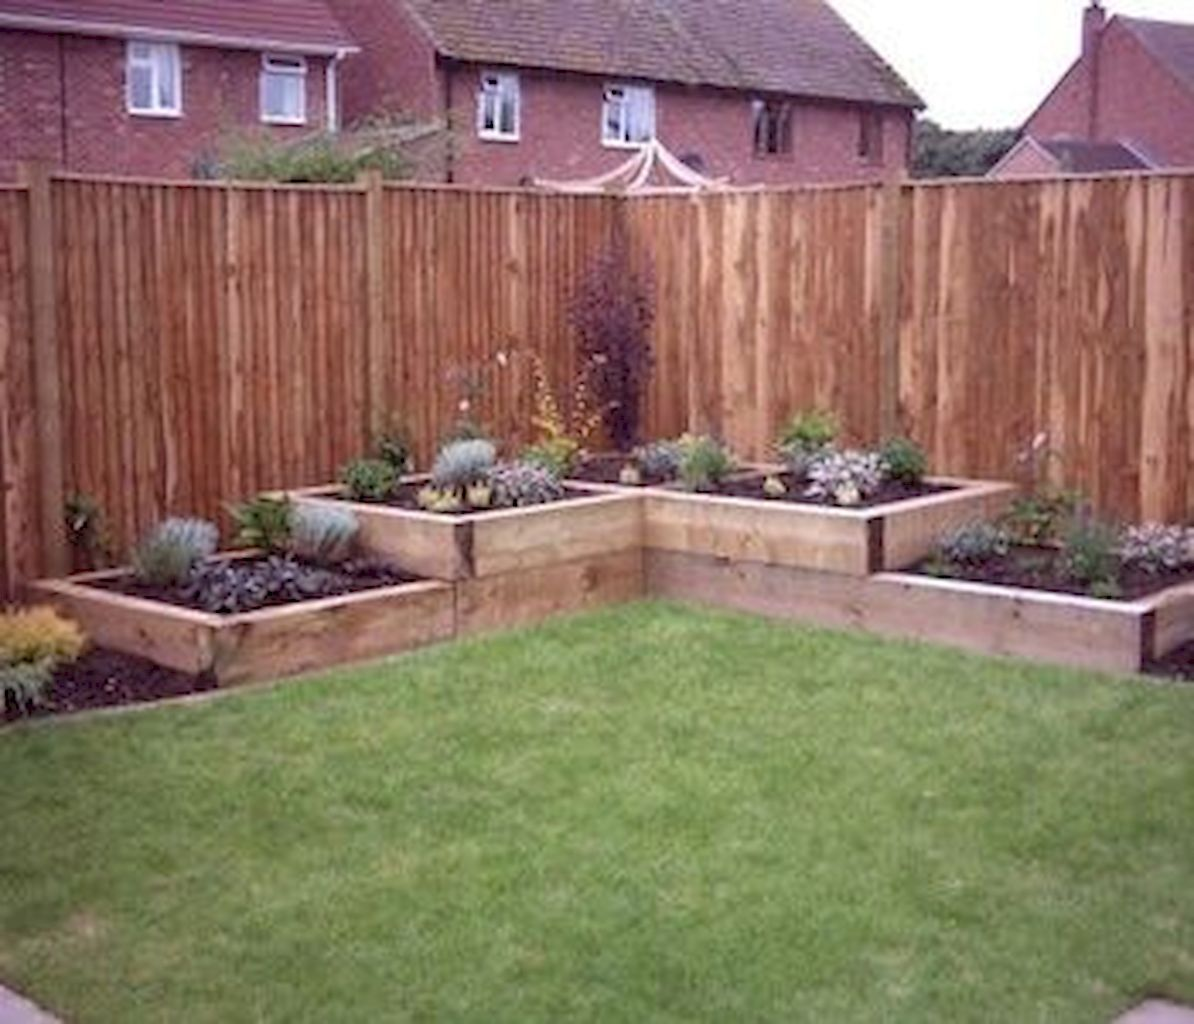 40 beautiful backyard landscaping ideas on a budget for Garden designs on a budget